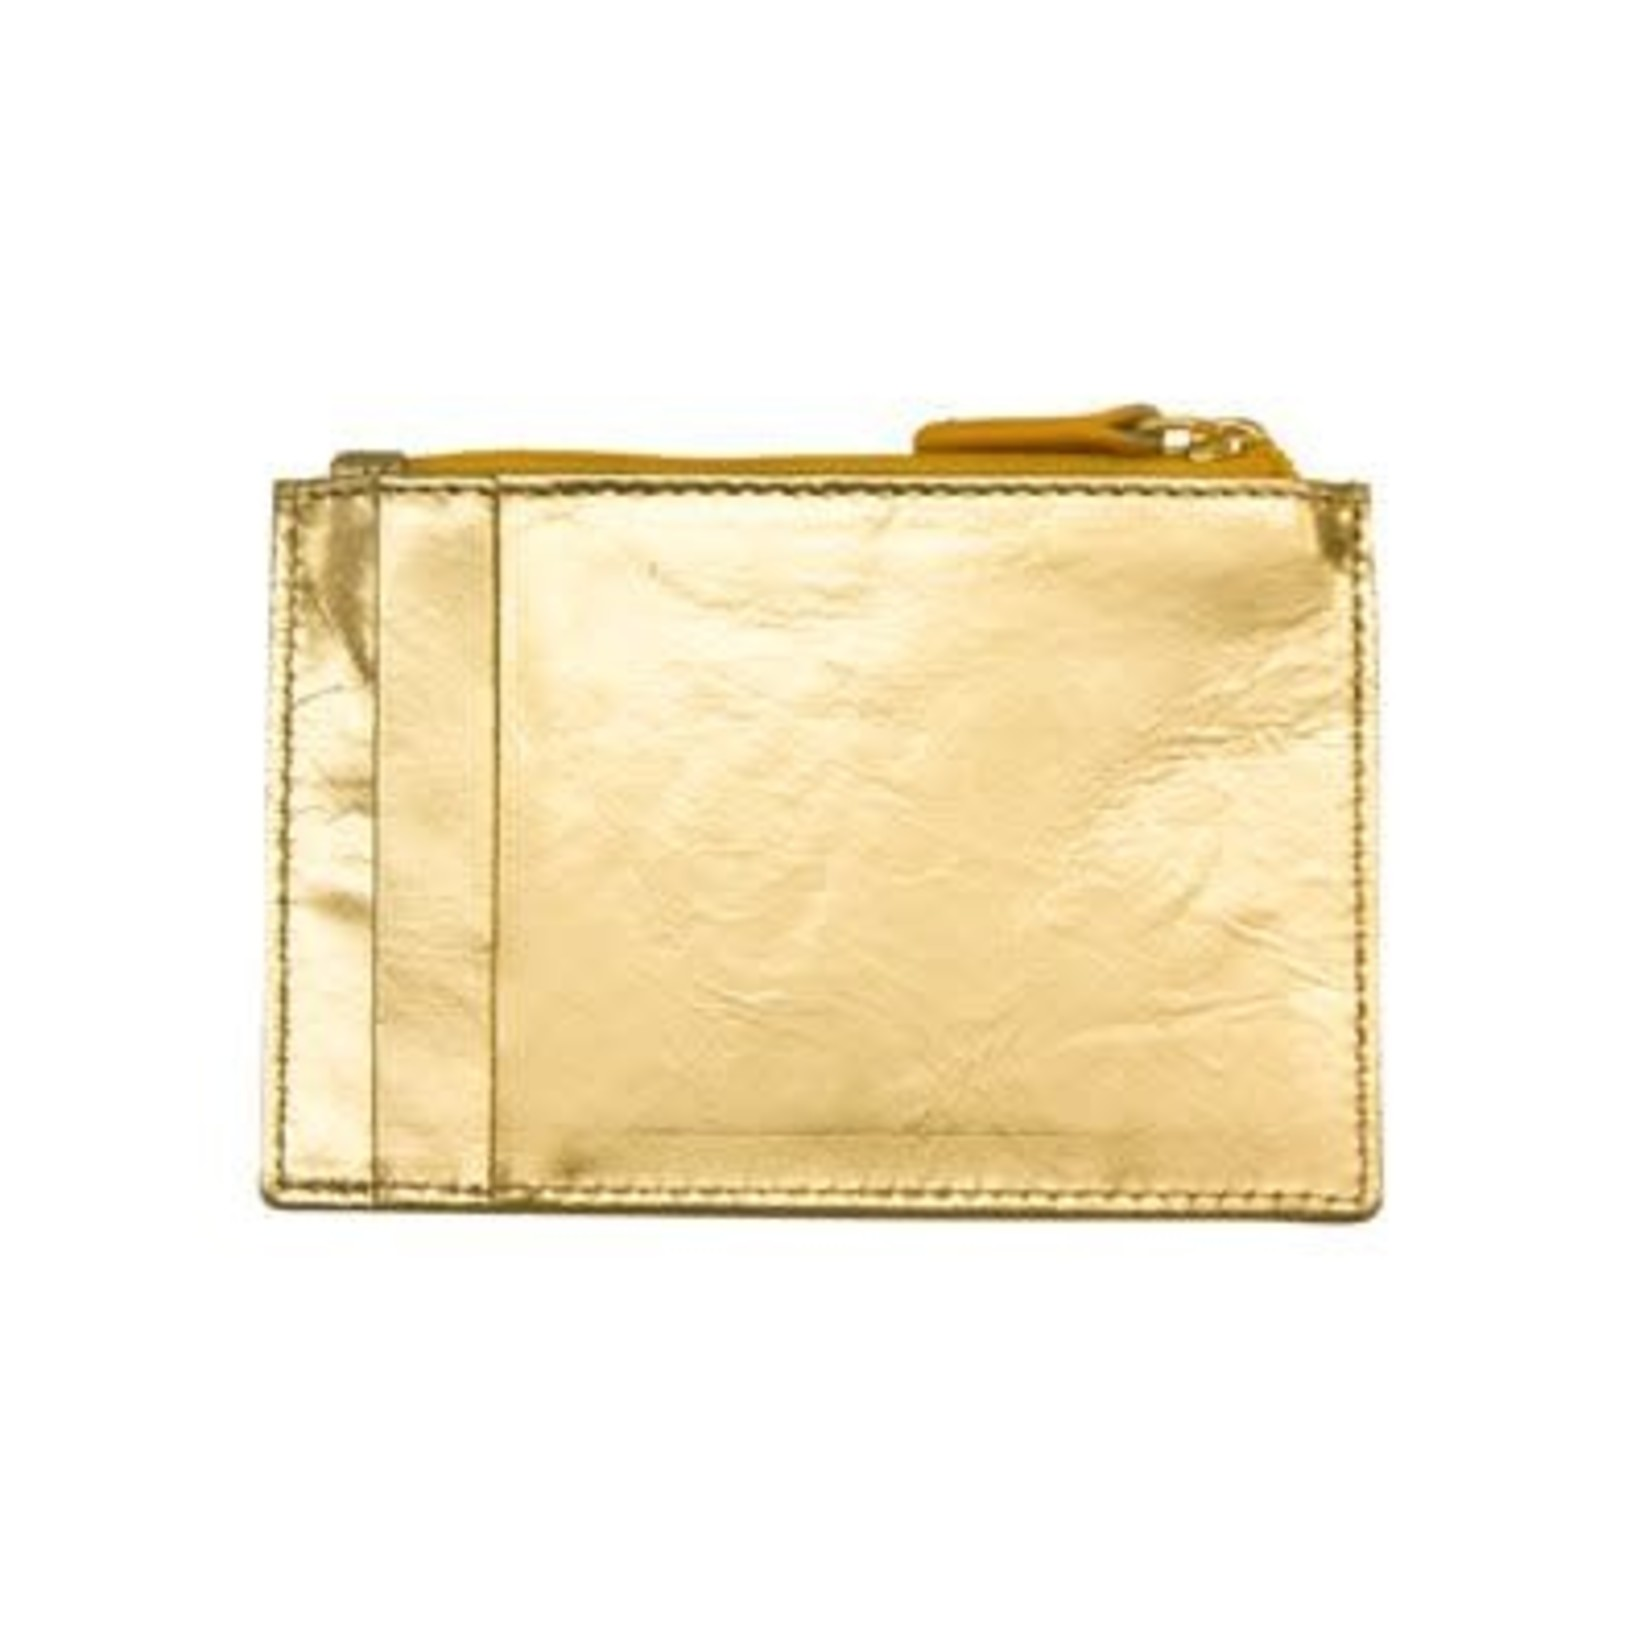 Leather Handbags and Accessories 7416 Gold - RFID Card Holder